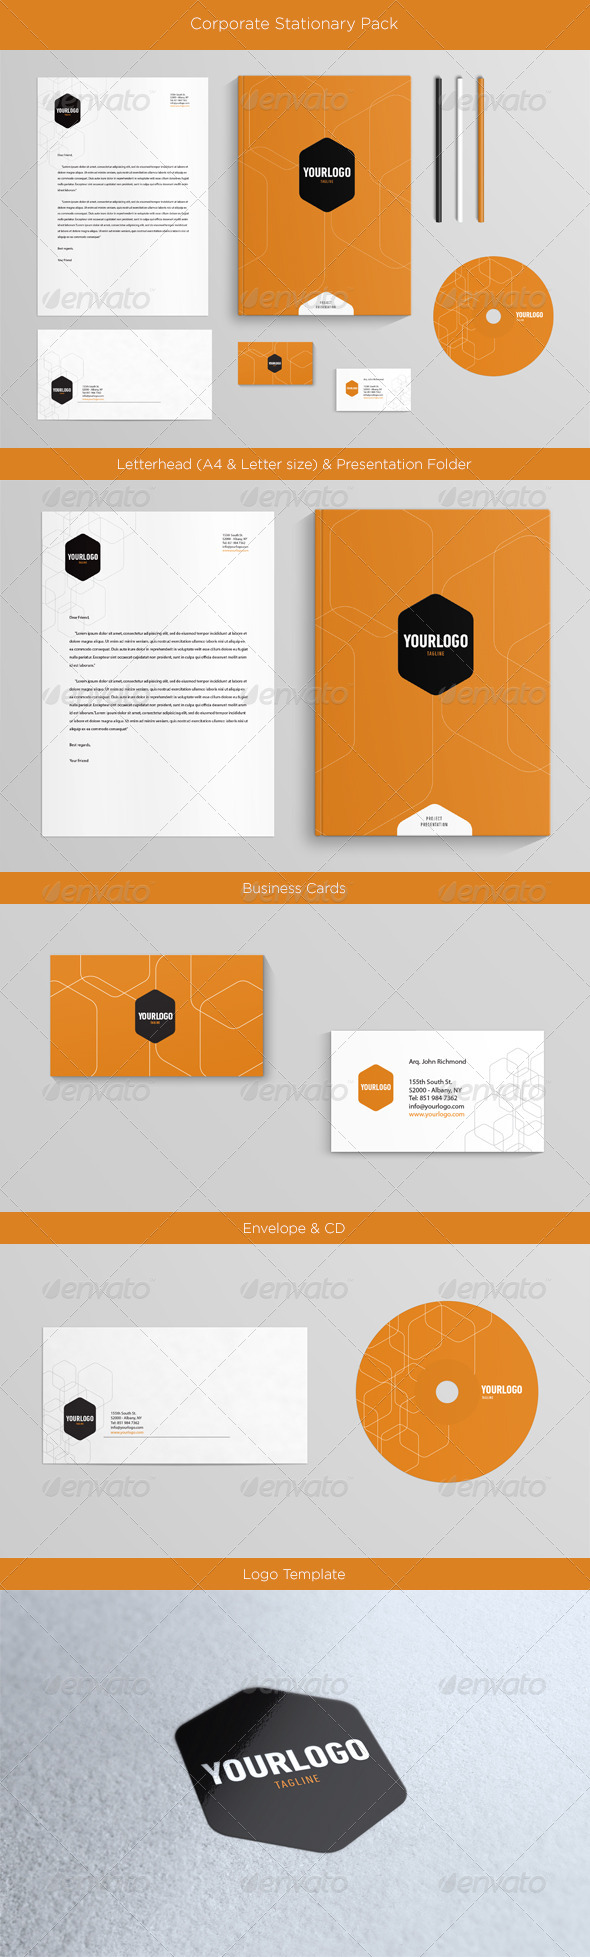 GraphicRiver Corporate Stationary 4496303